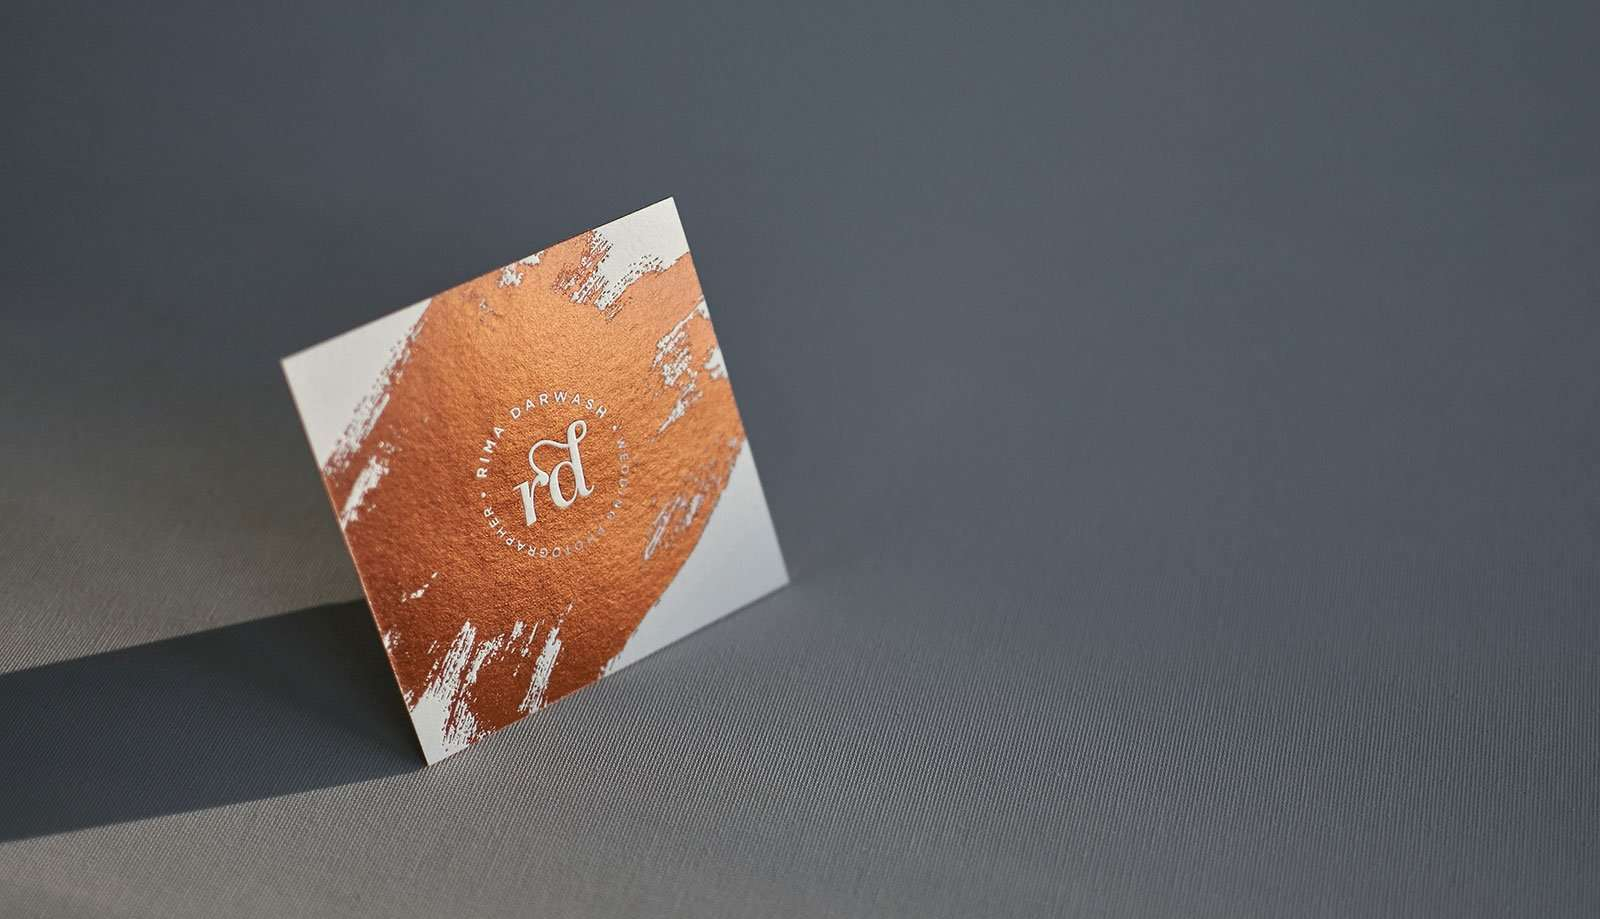 Copper Foiled Square Letterpress Business Cards | ELEGANTE PRESS ...